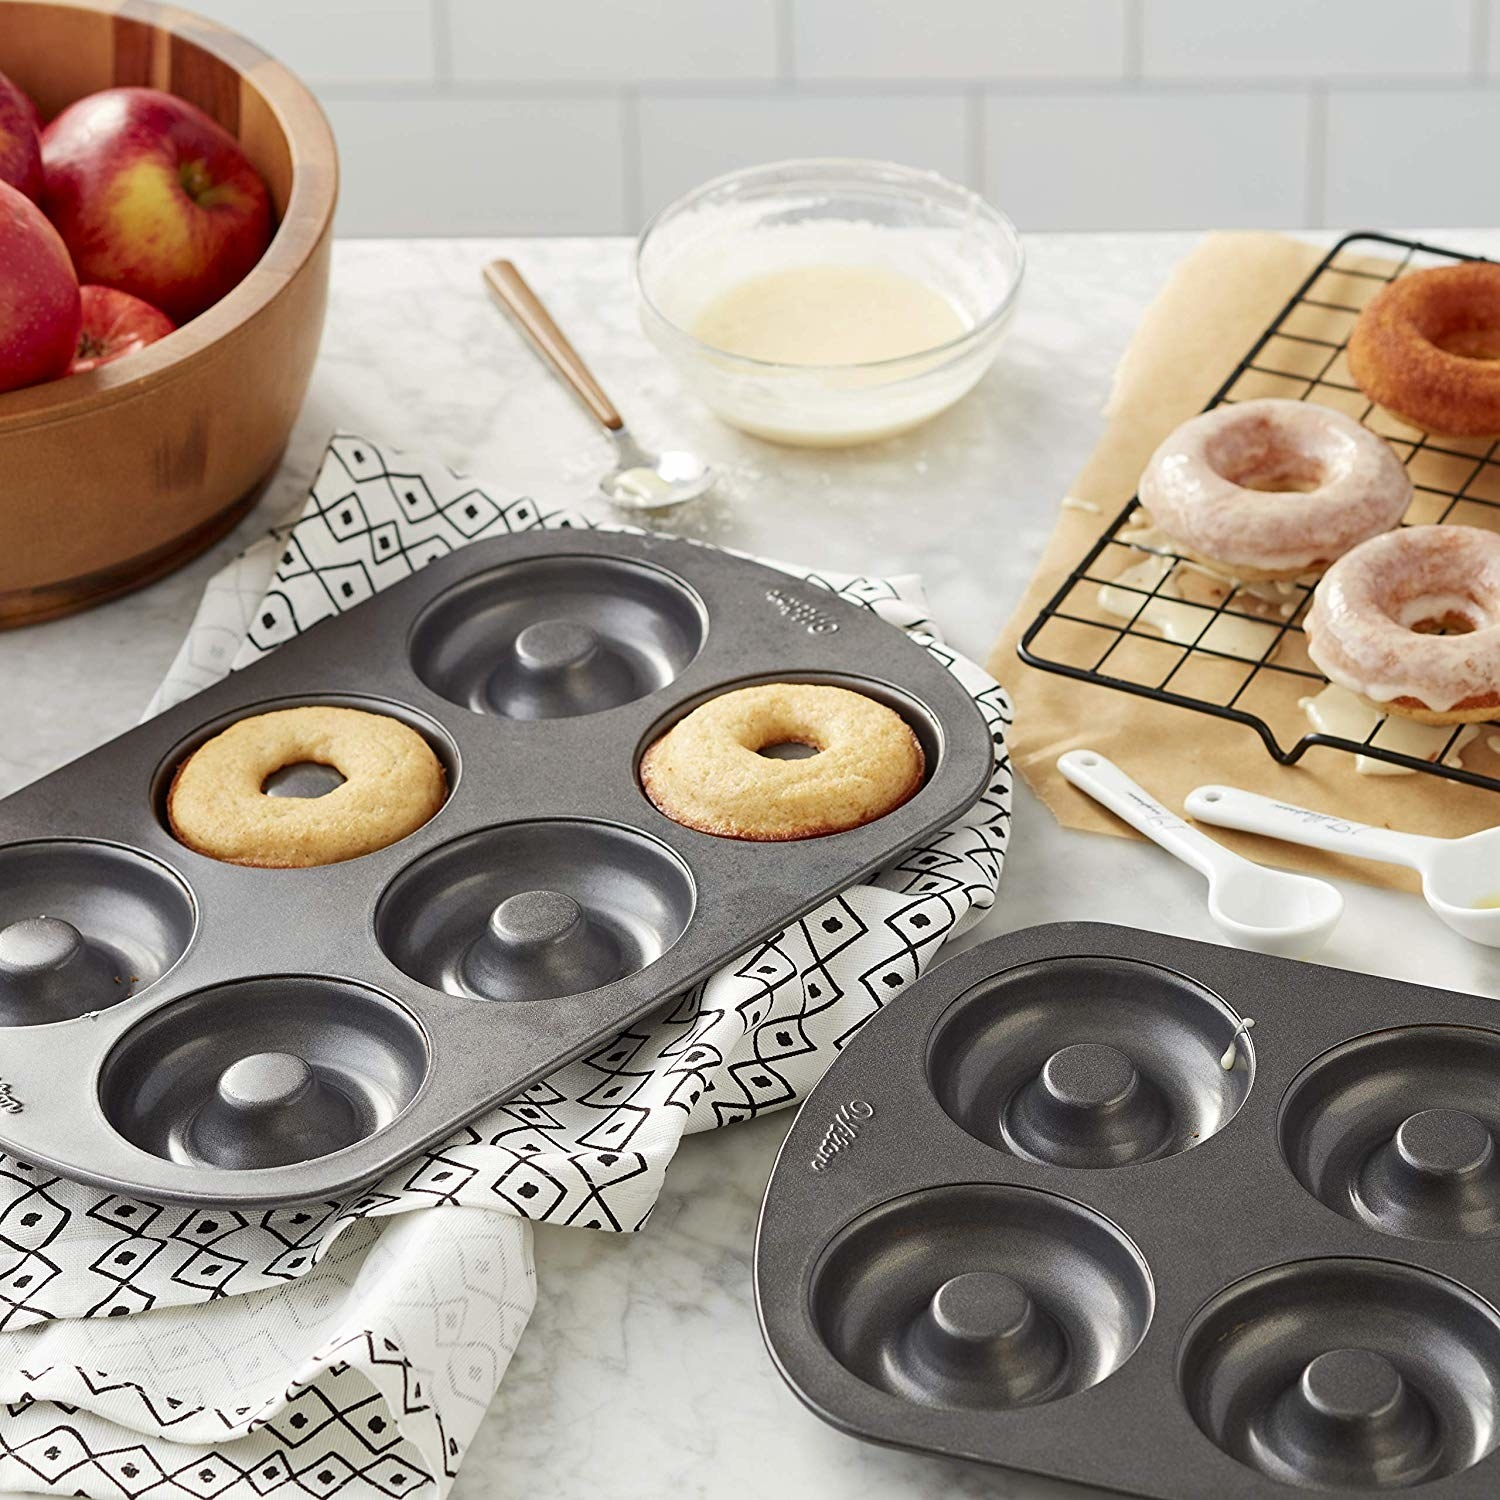 pan with six doughnut shaped molds